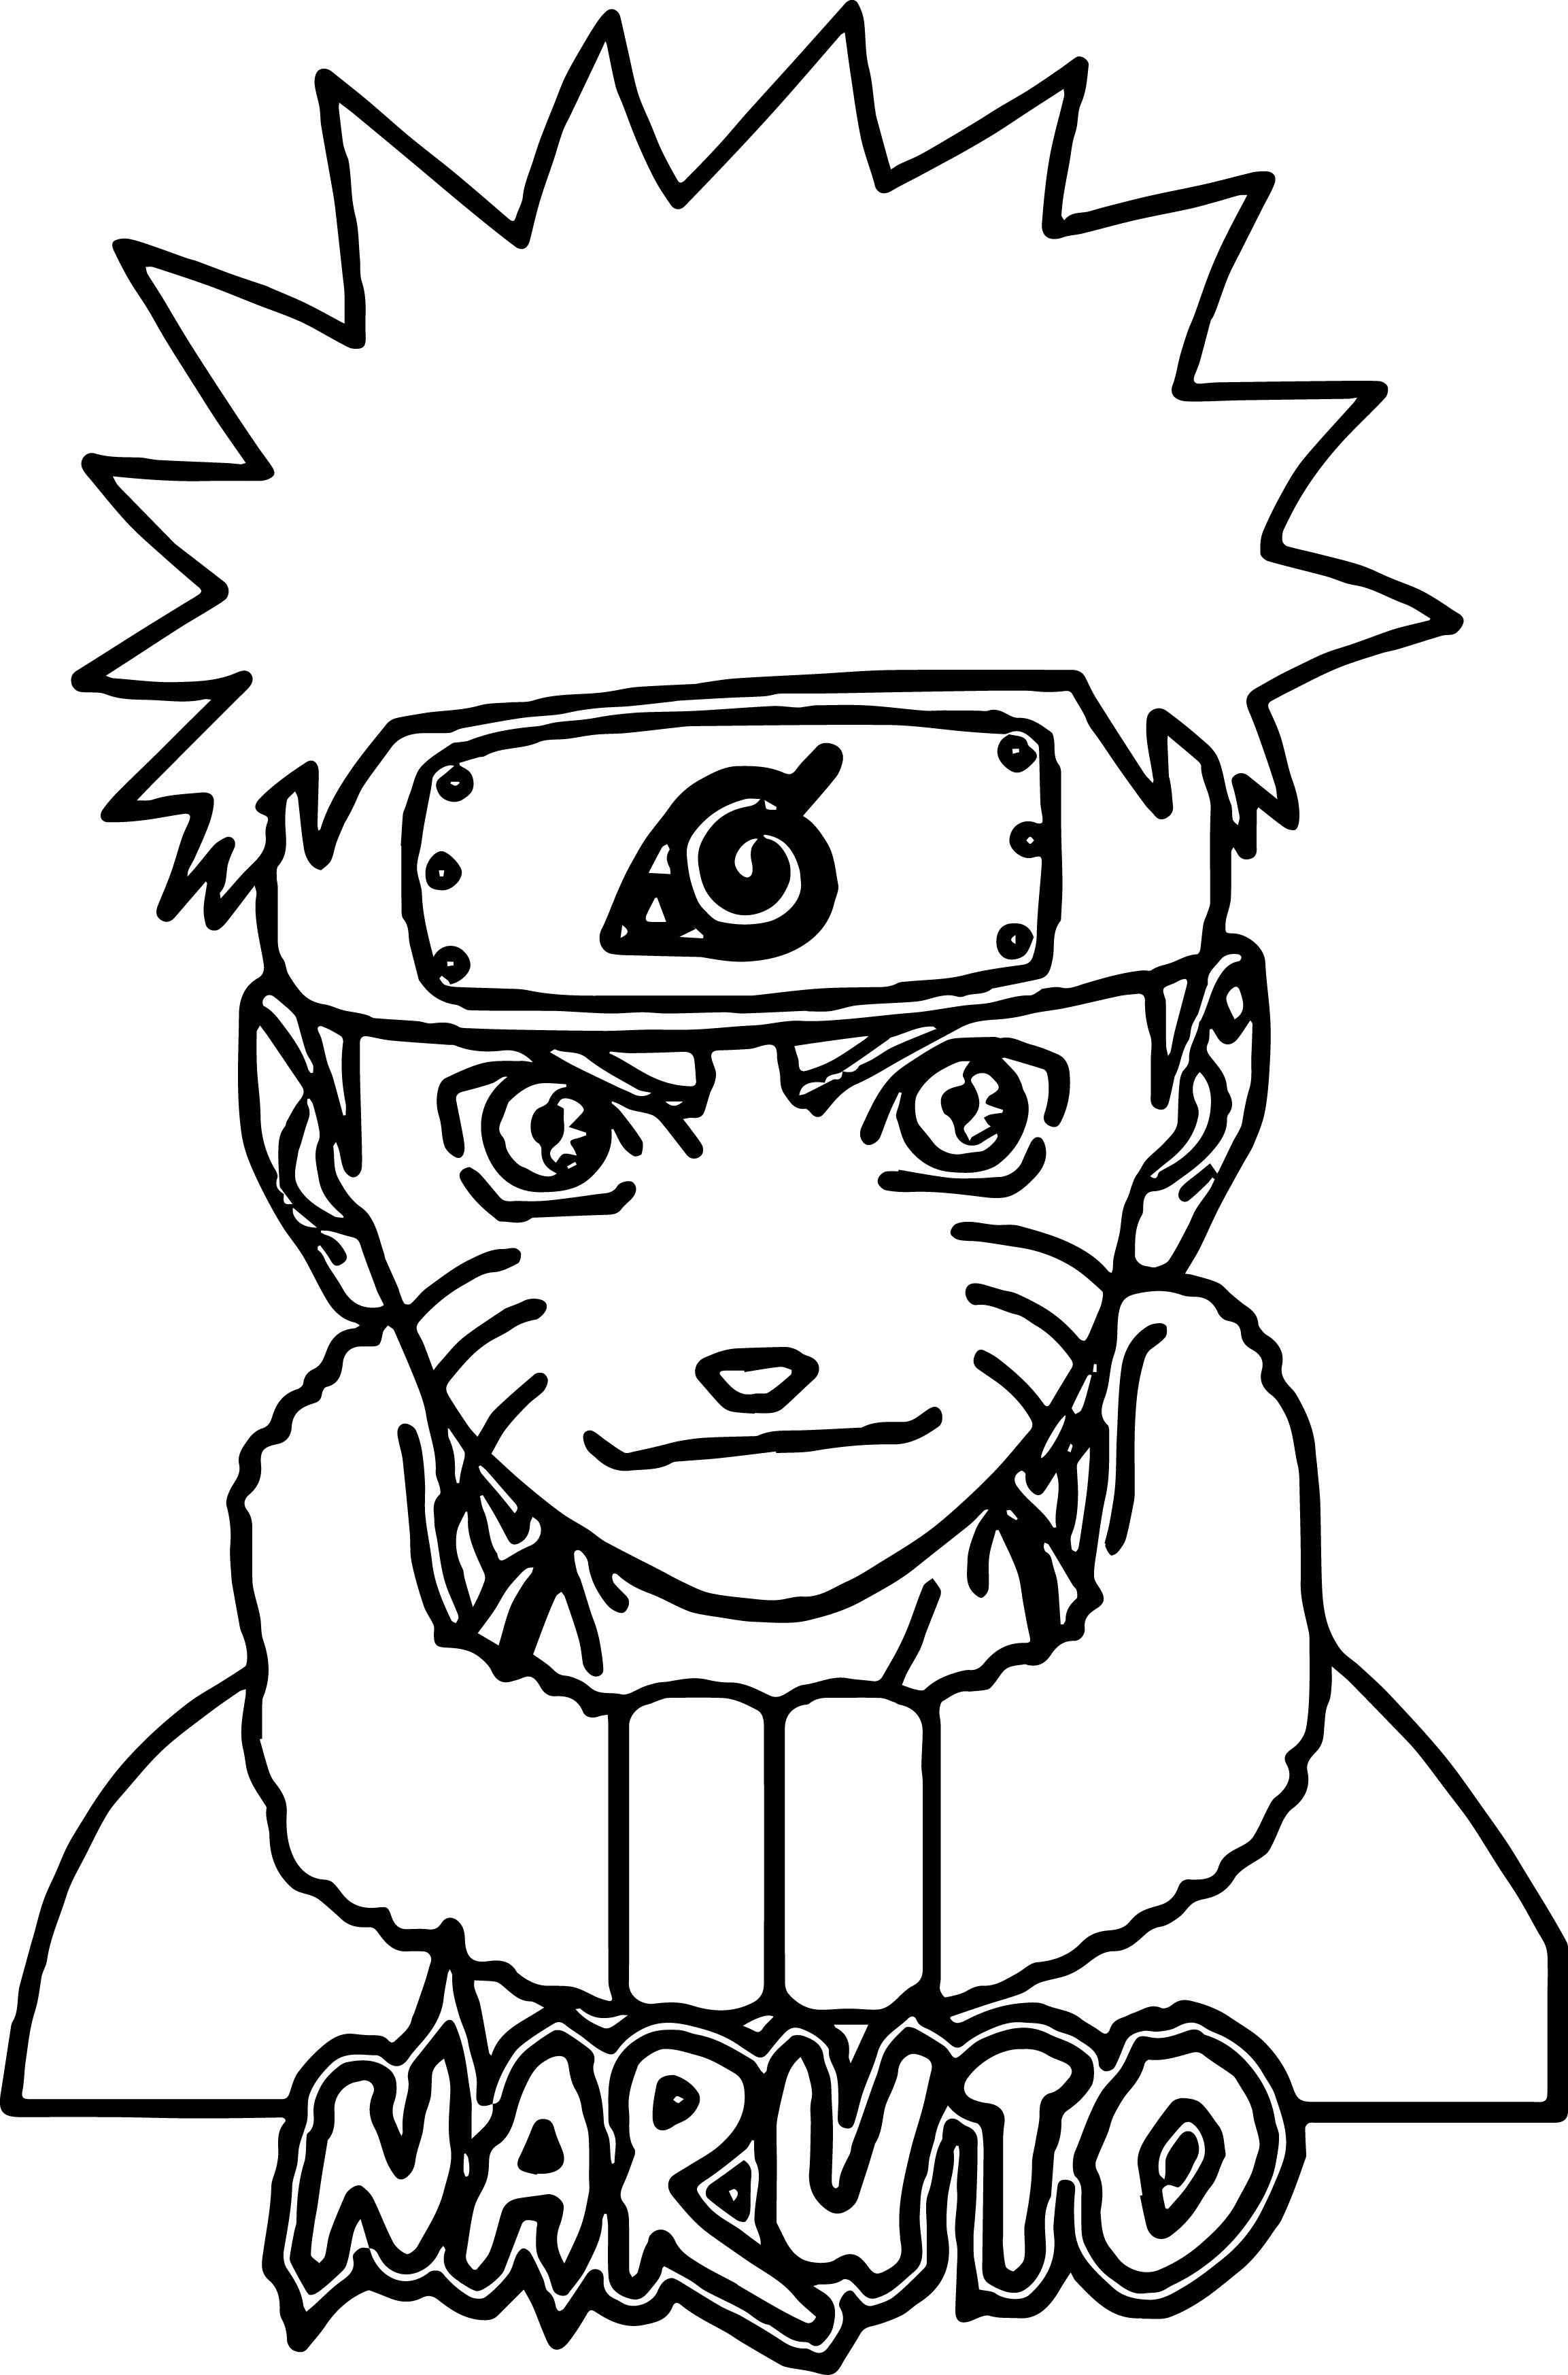 Nice Anime Naruto Coloring Page Coloring Pages Anime Coloring